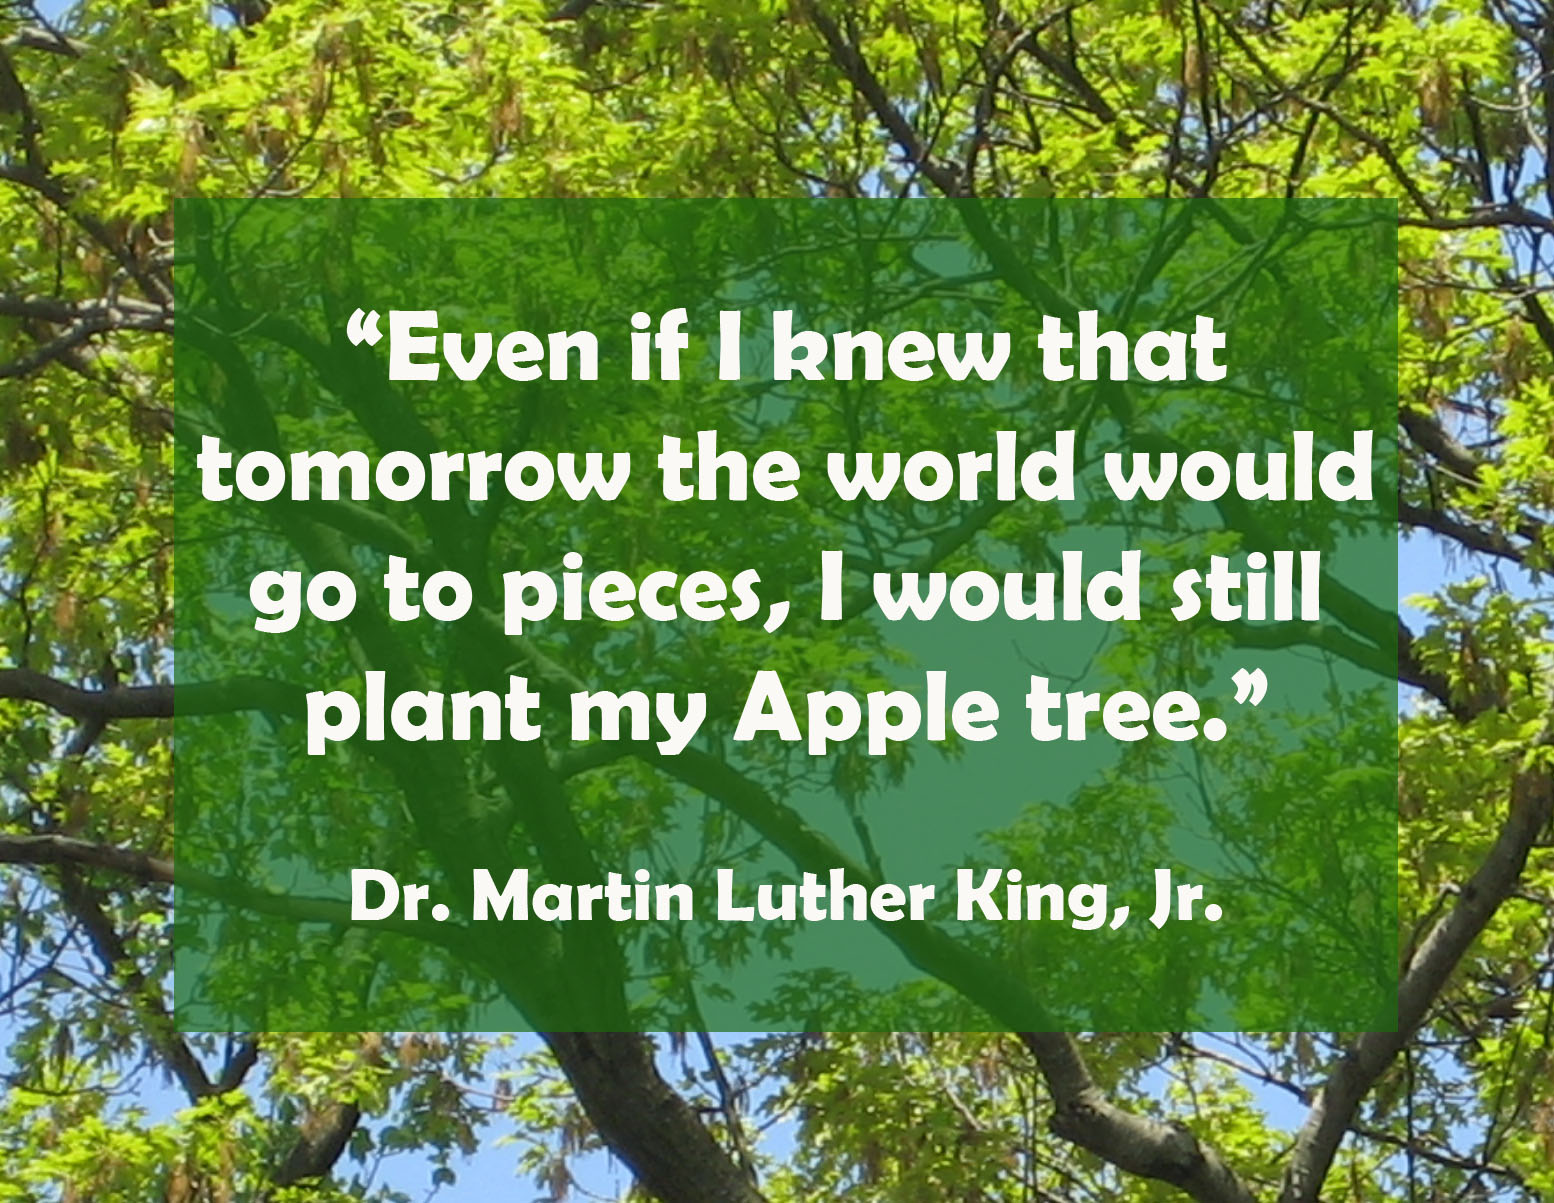 Dr. Martin Luther King Jr Apple Tree.jpg